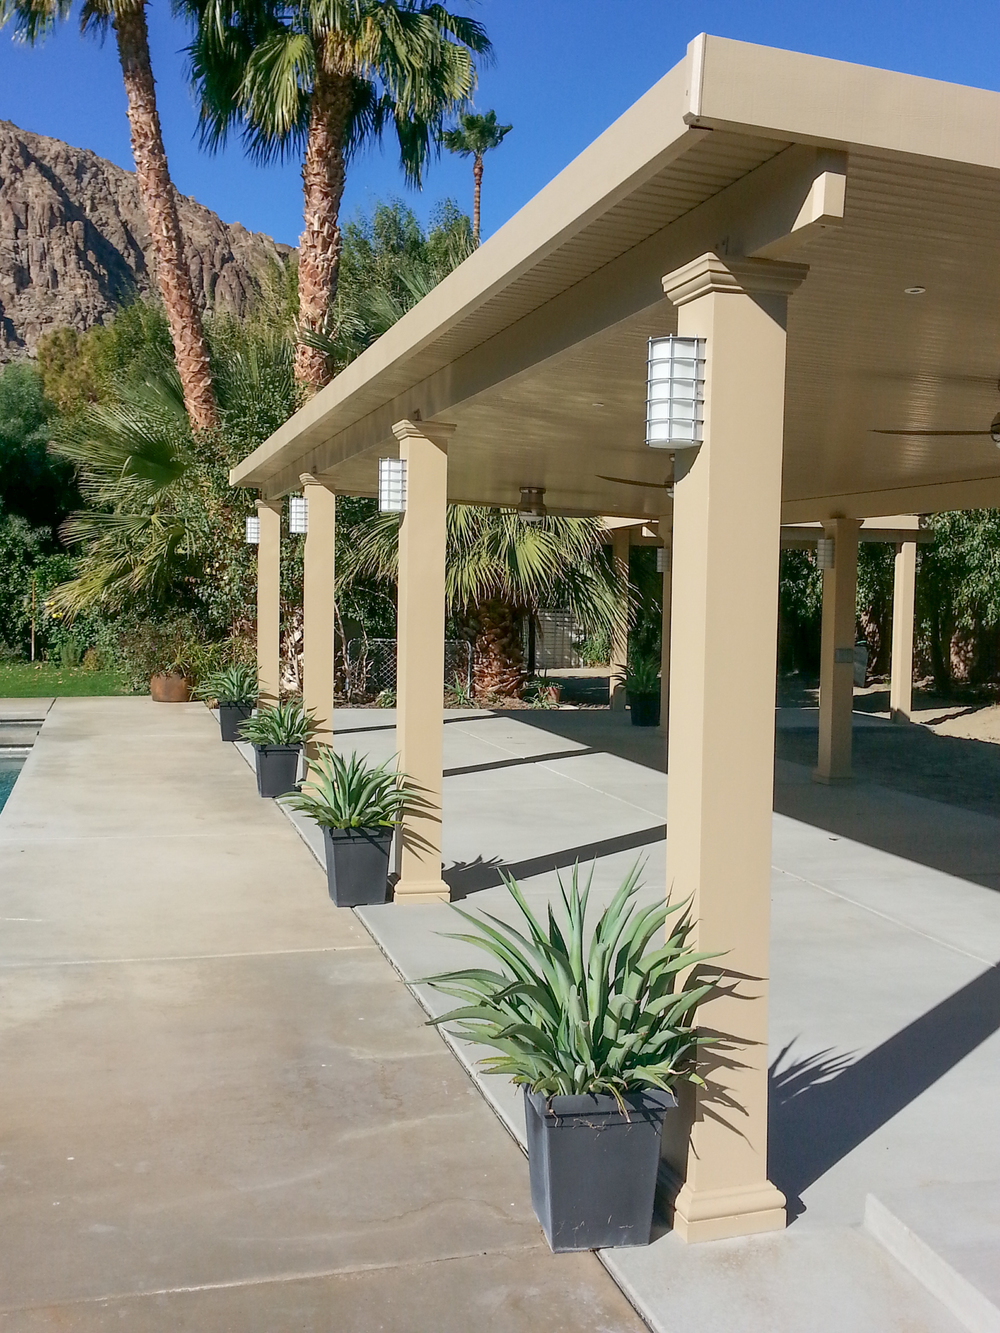 Patio Cover Designs| Patio Ideas | Valley Patios | Palm ... on Patio Cover Ideas id=65162